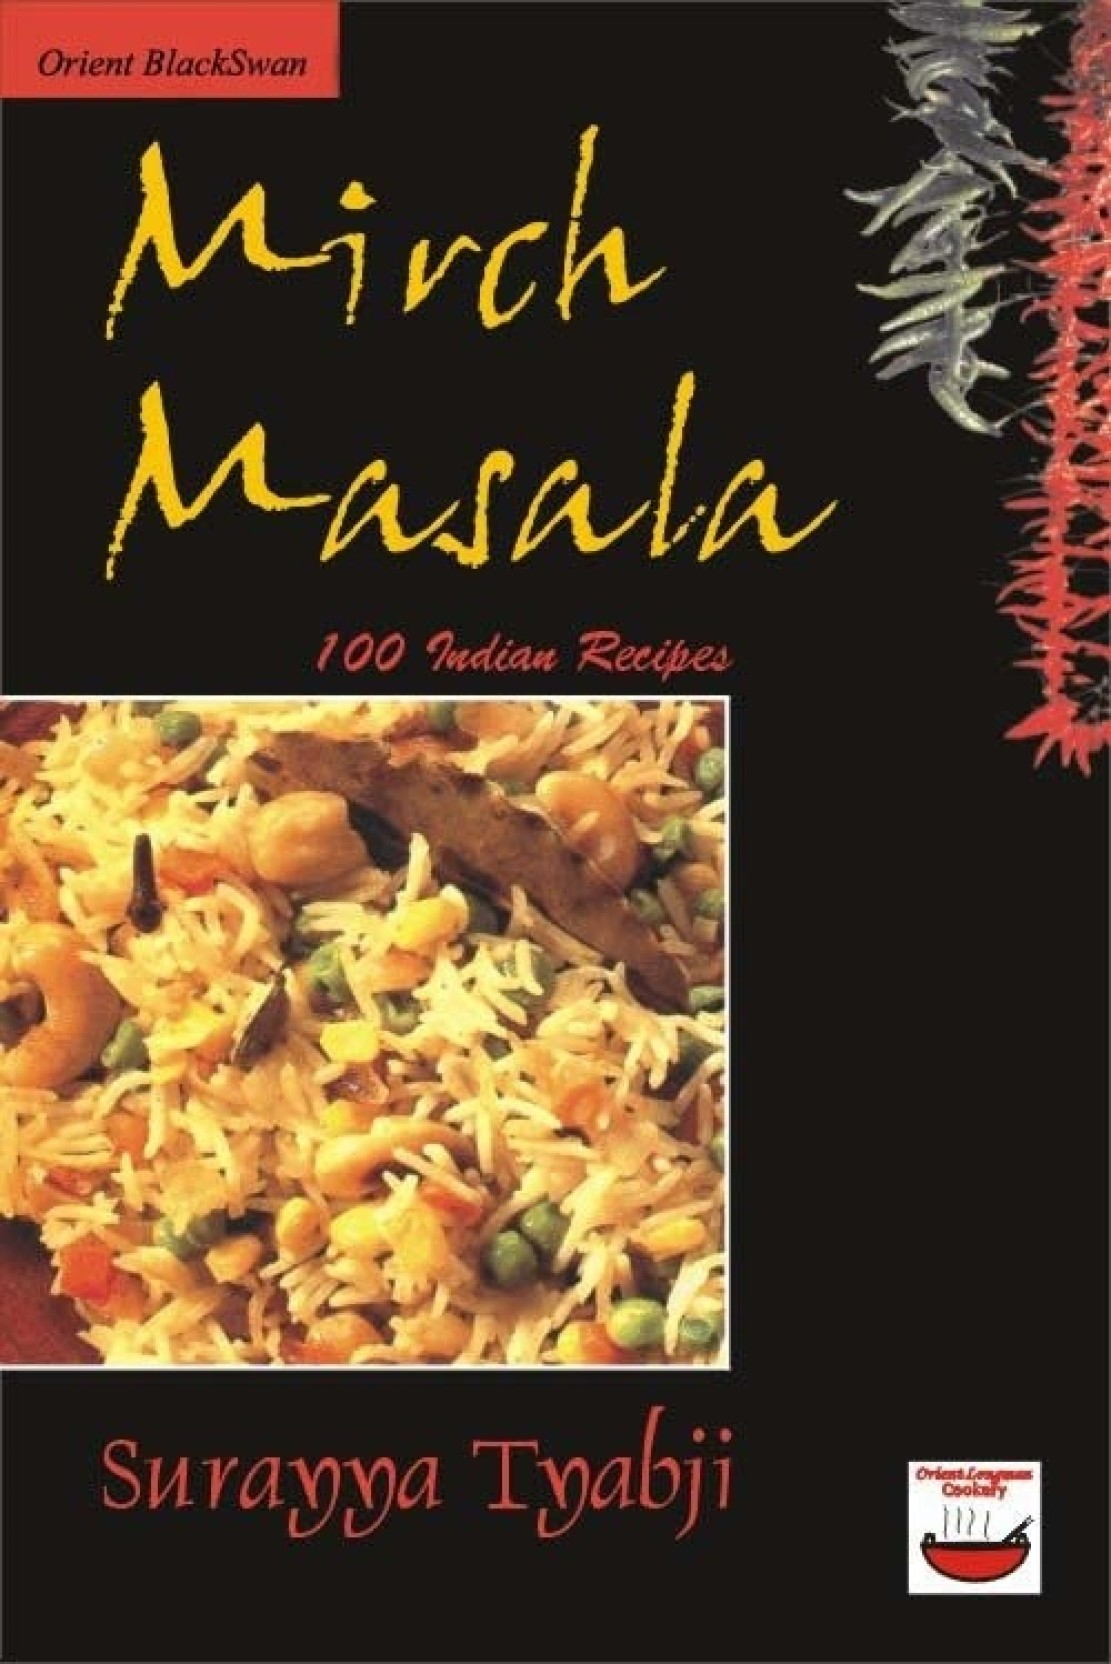 hajras recipes of life for life delectable muslim cooking